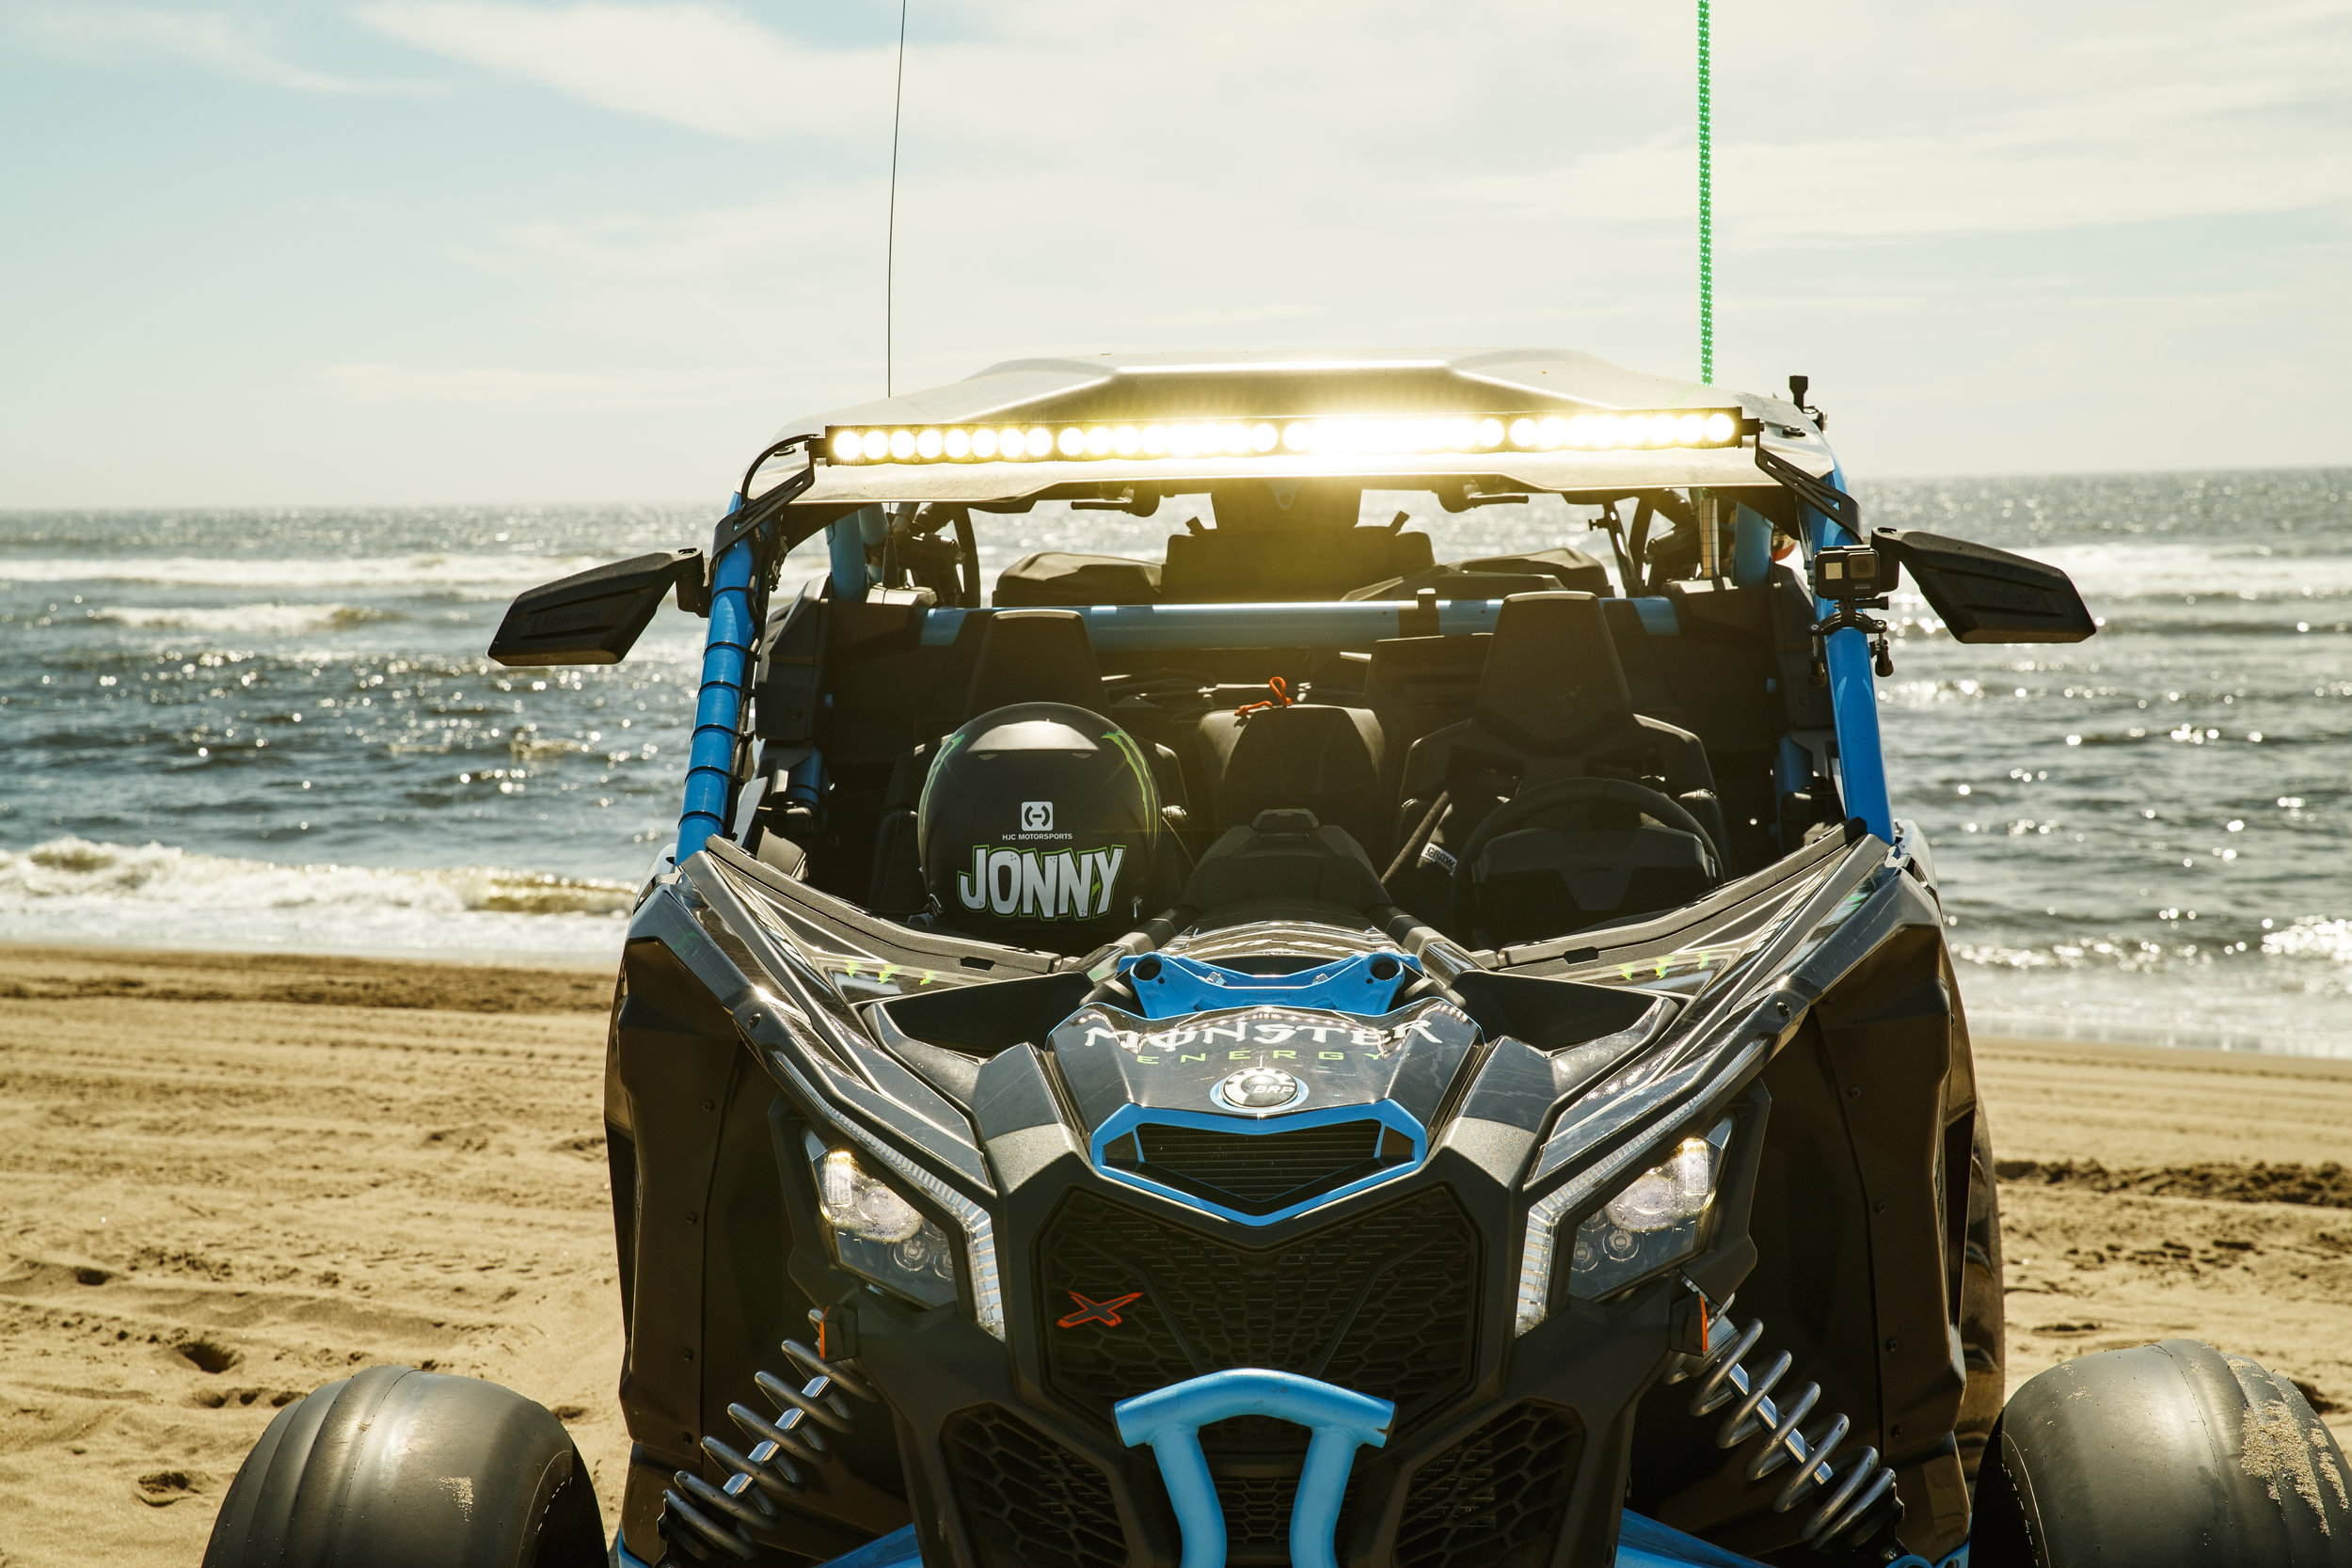 CaseyCurrie_UTVTakeover_CoosBay_Oregon_Can-Am_012.jpg